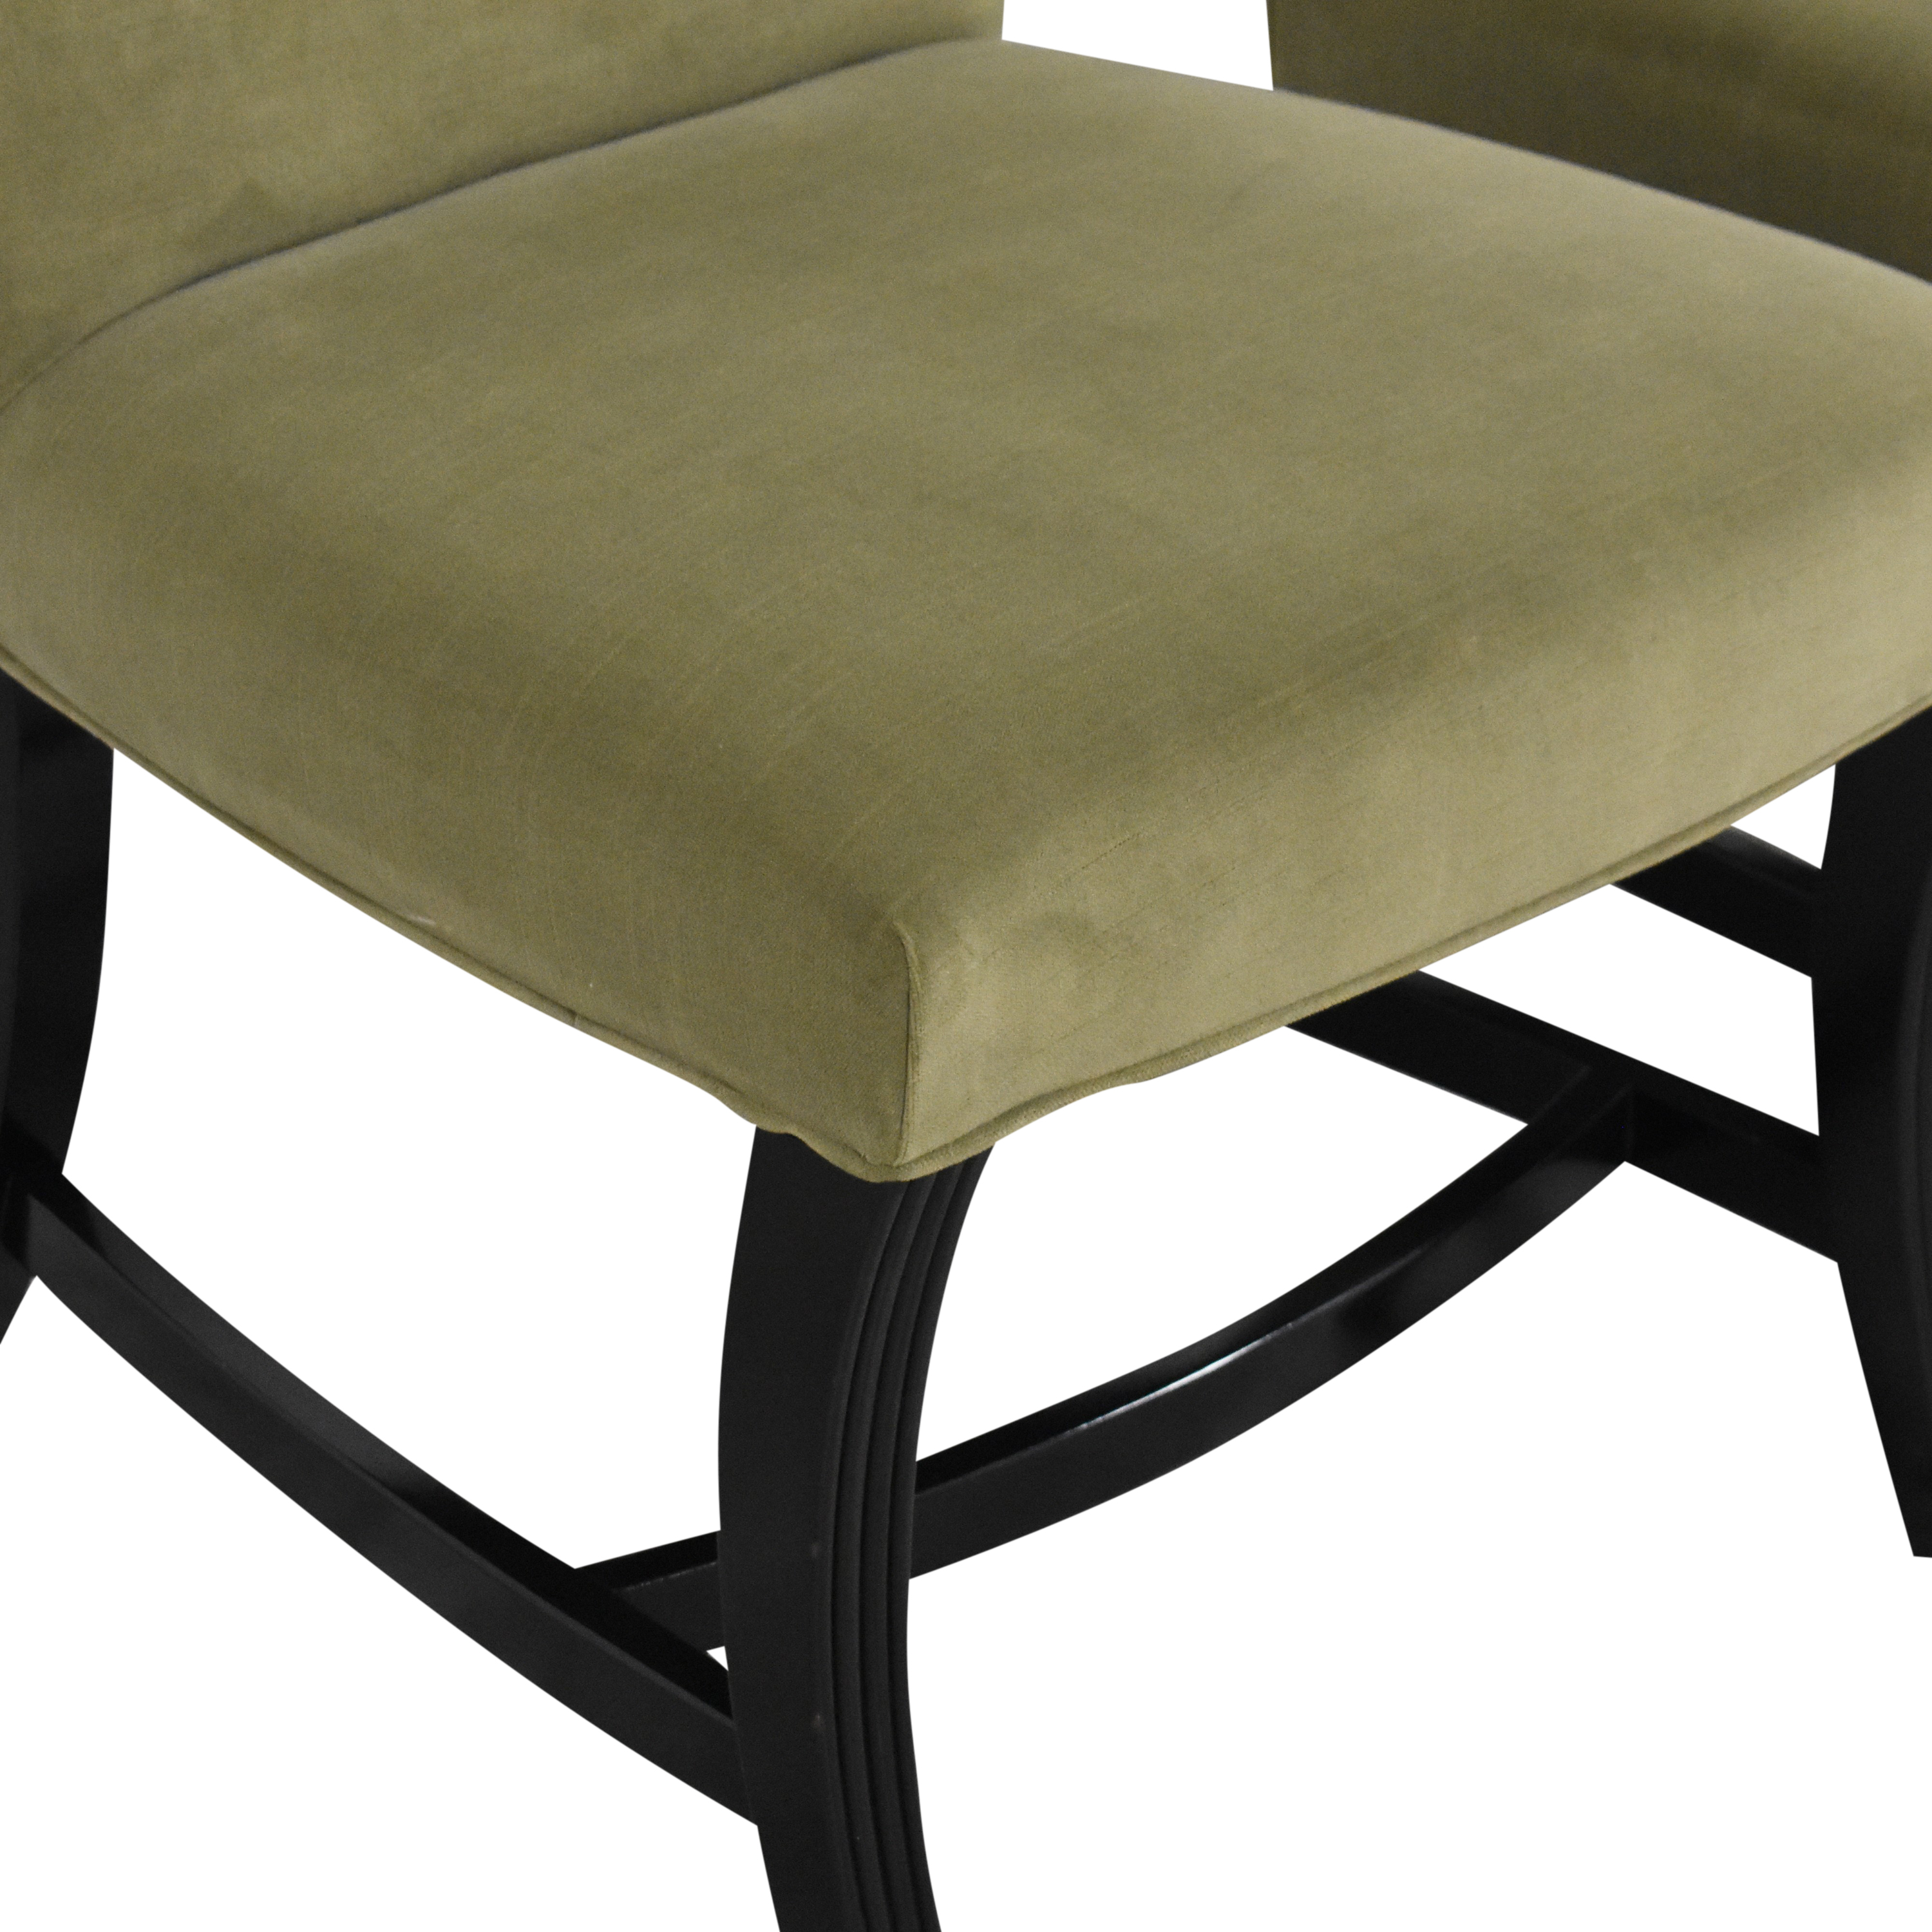 Drexel Heritage Drexel Heritage Upholstered Dining Chairs used